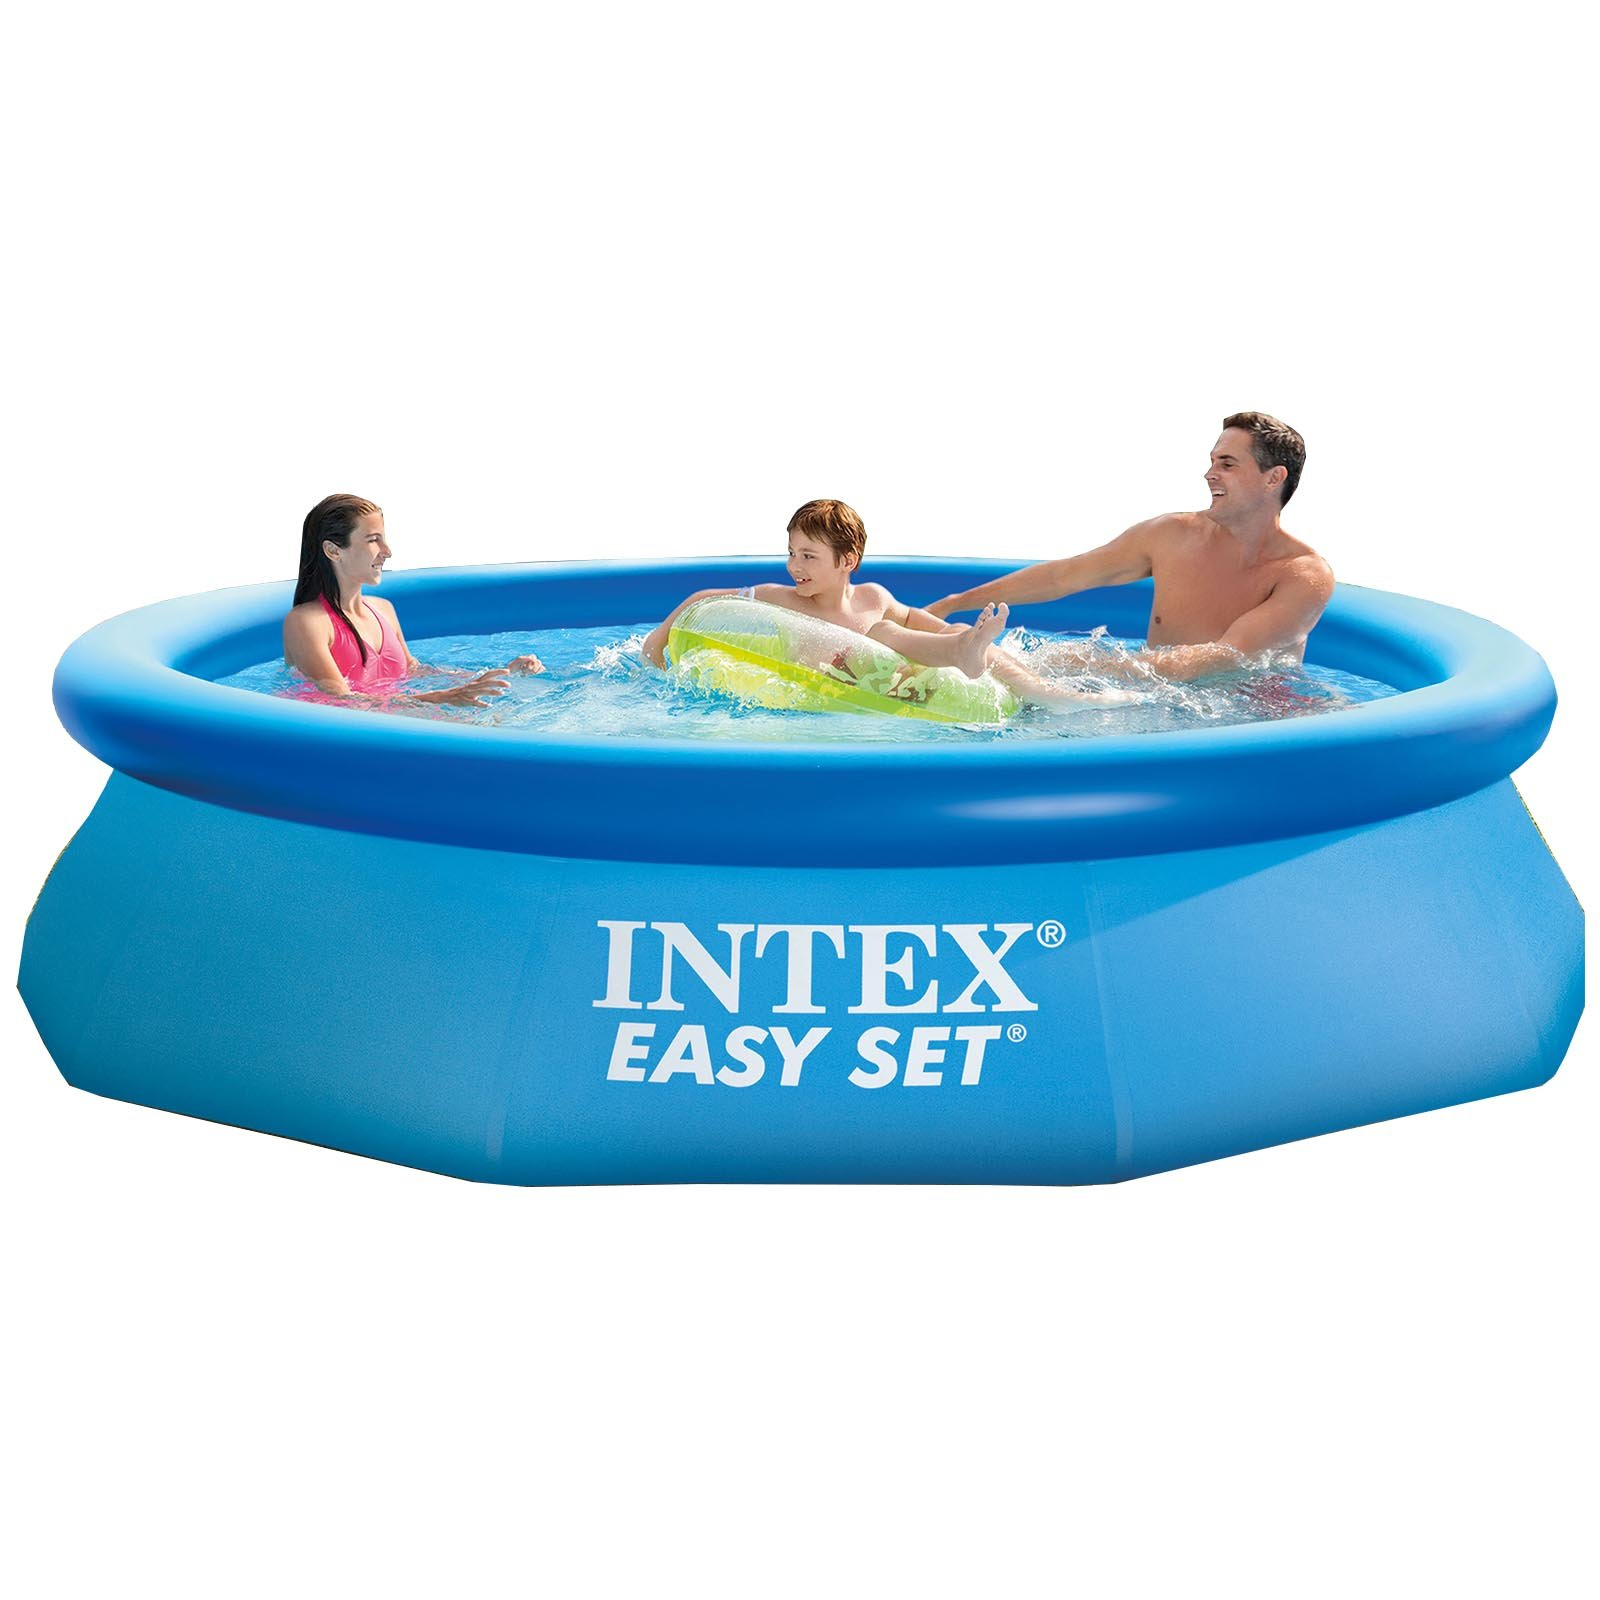 Intex 10 39 X 30 Easy Set Above Ground Inflatable Family Swimming Pool W O Pump Ebay